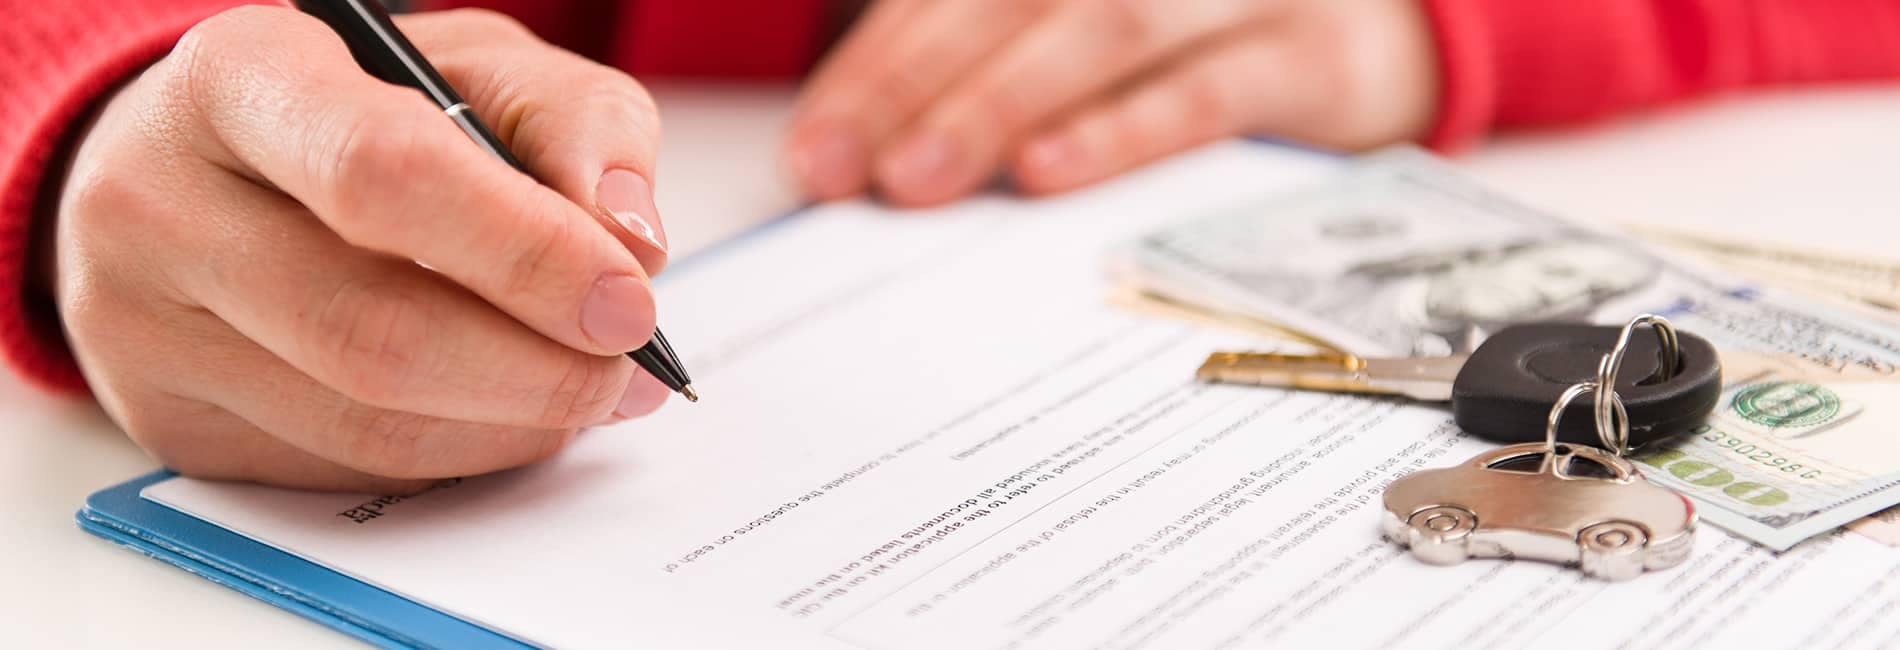 person filling out paperwork with keys on the table